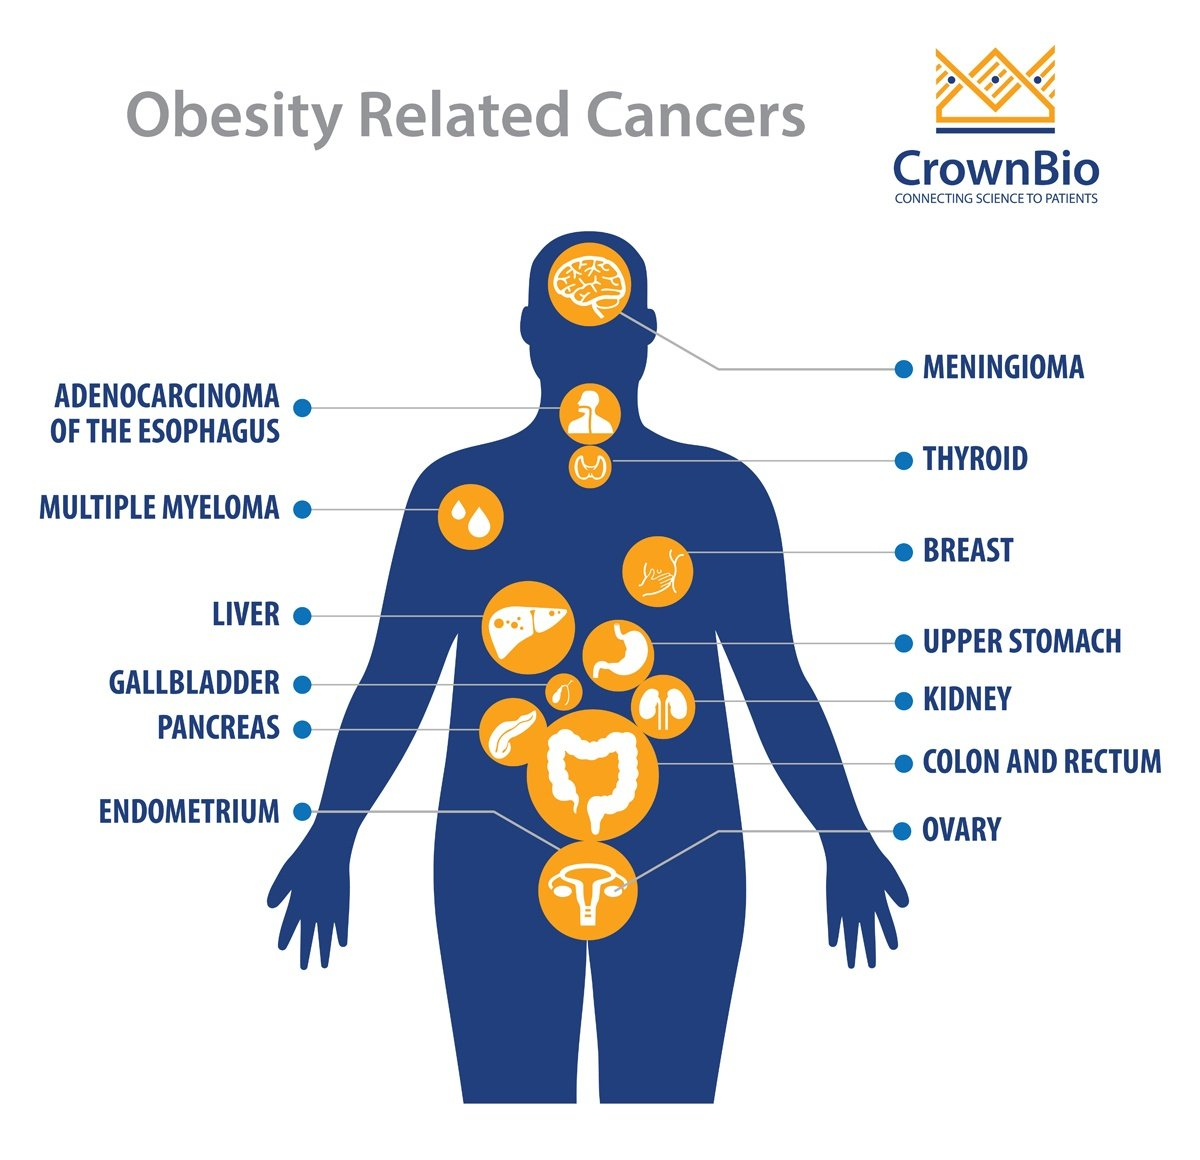 Obesity, Cancer Development, and Immunotherapy Response